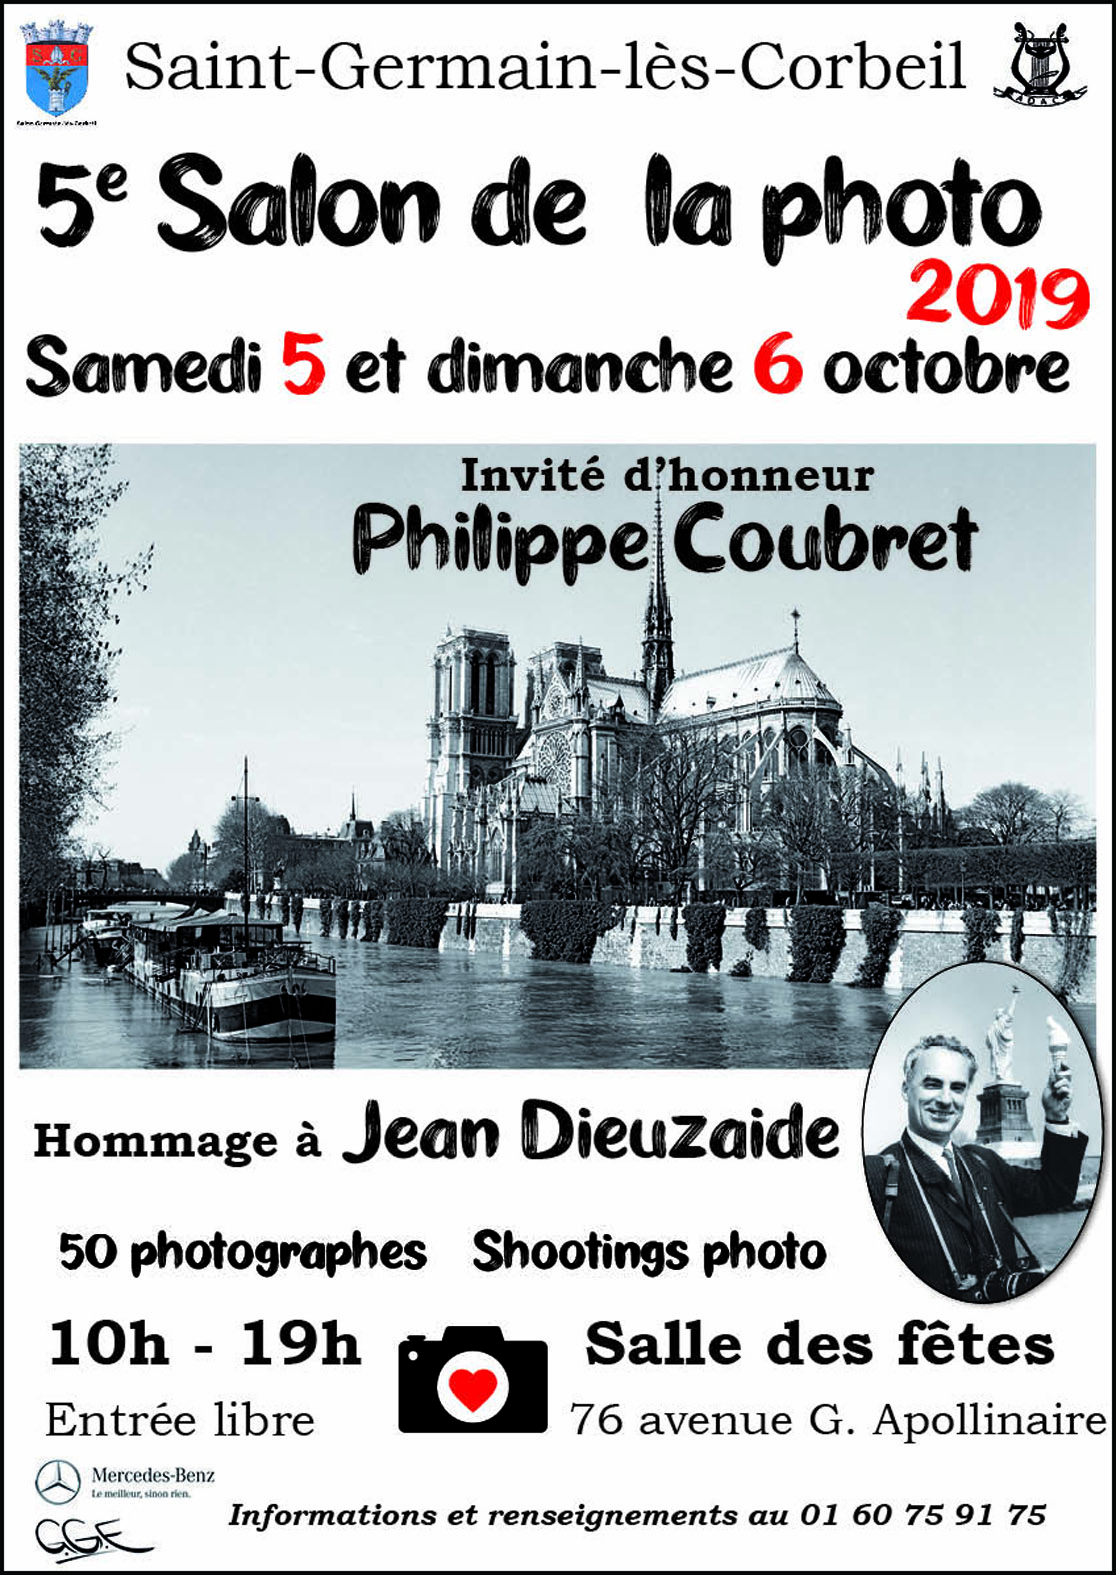 Photos de Robert Desgroppes exposées au 5ème Salon Photo de Saint- Germain-lès-Corbeil (vernissage le samedi 5 octobre 19 à 12h00